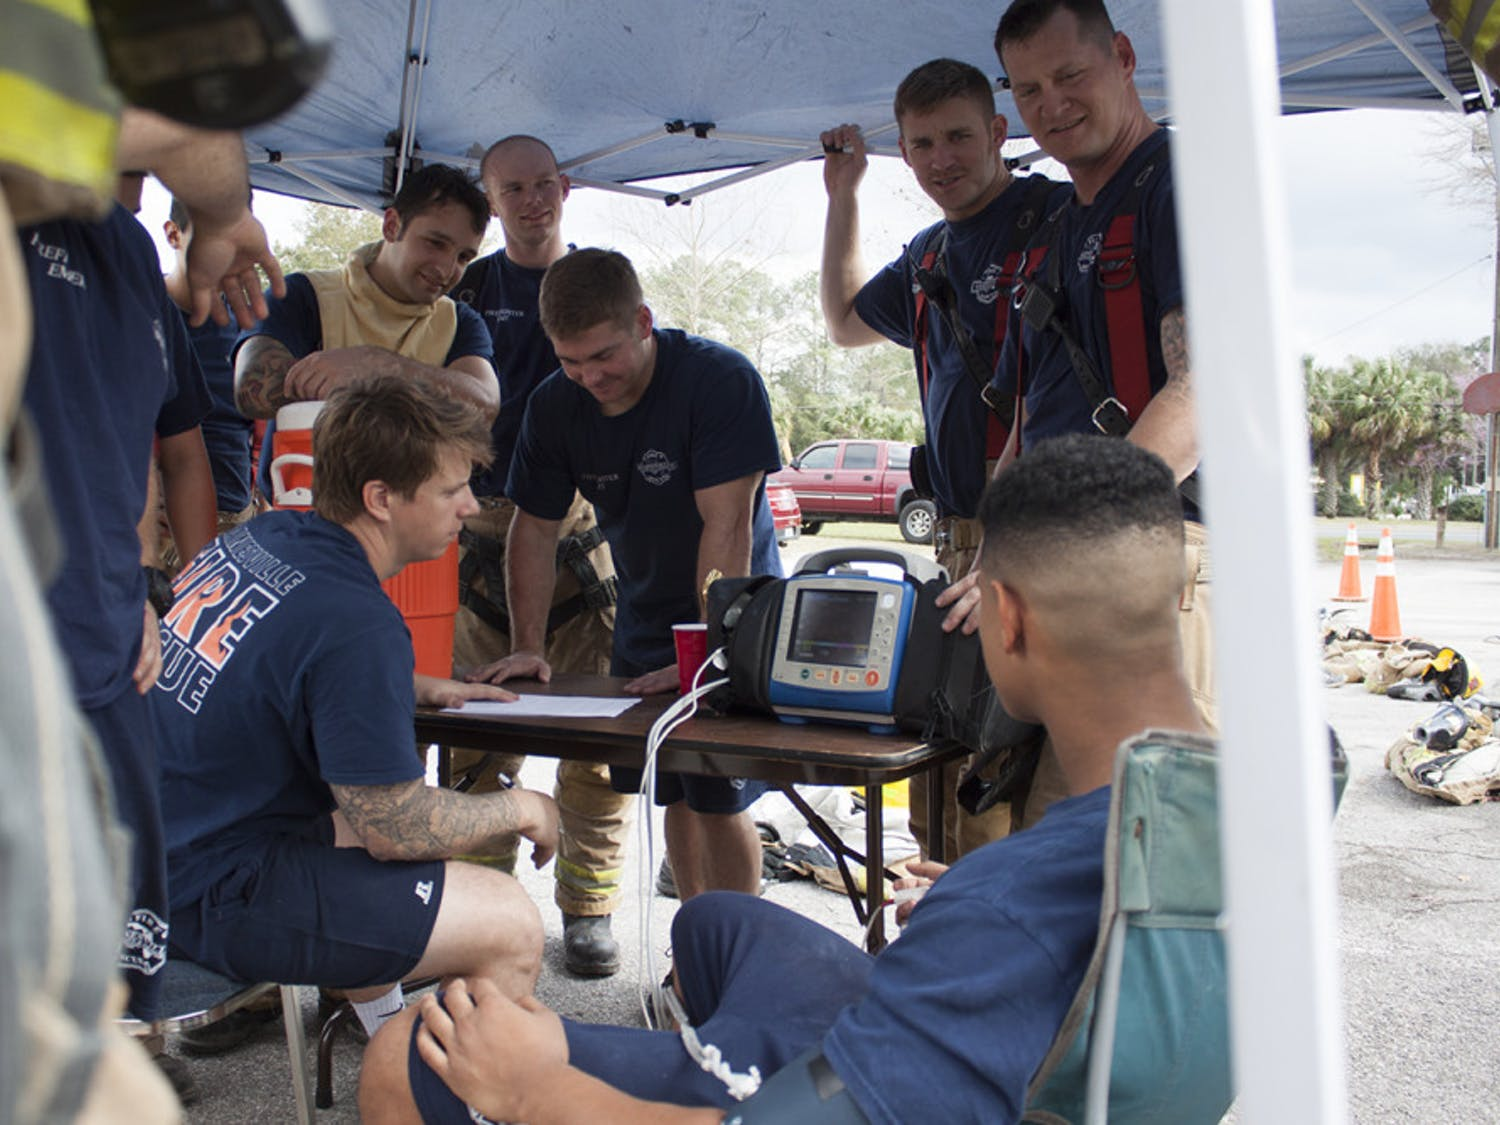 The new hires check each other's vital signs before heading into burning shipping containers for live-burn training at Gainesville Fire Rescue Station 3, located at 900 NE Waldo Rd.